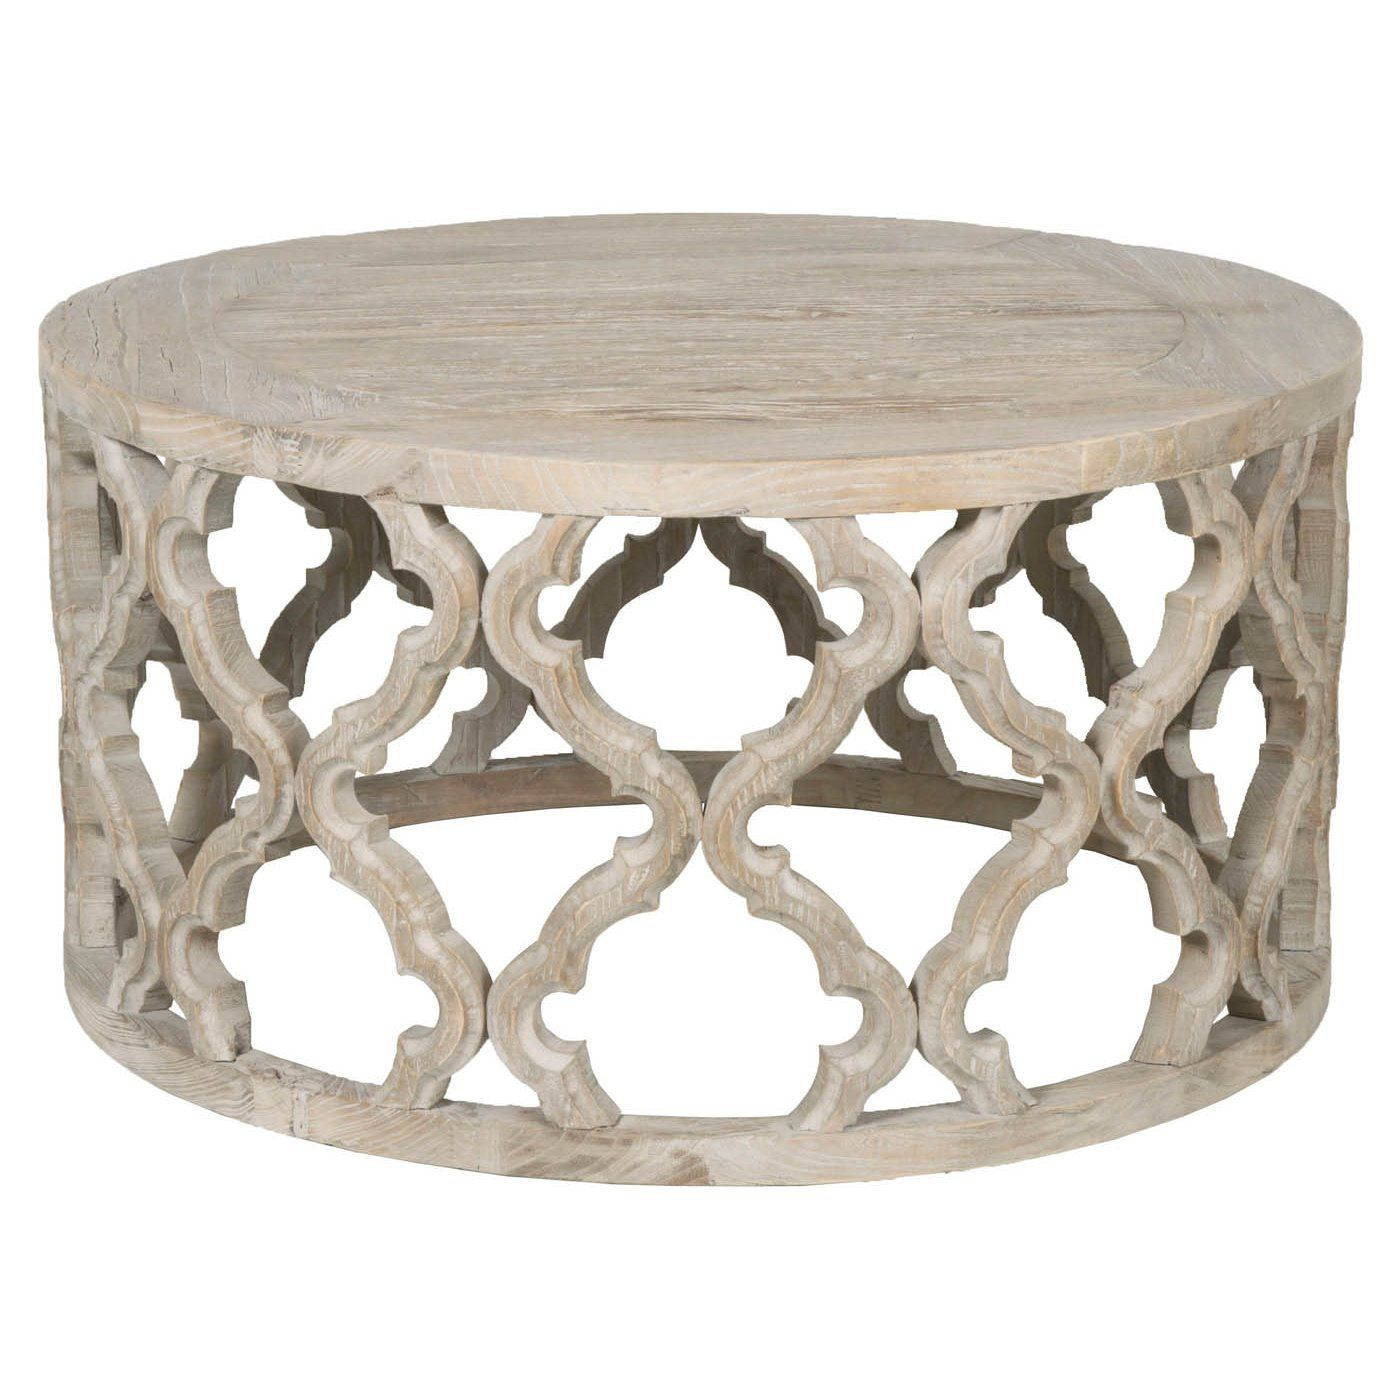 Clover coffee table grey wood coffee table contemporary